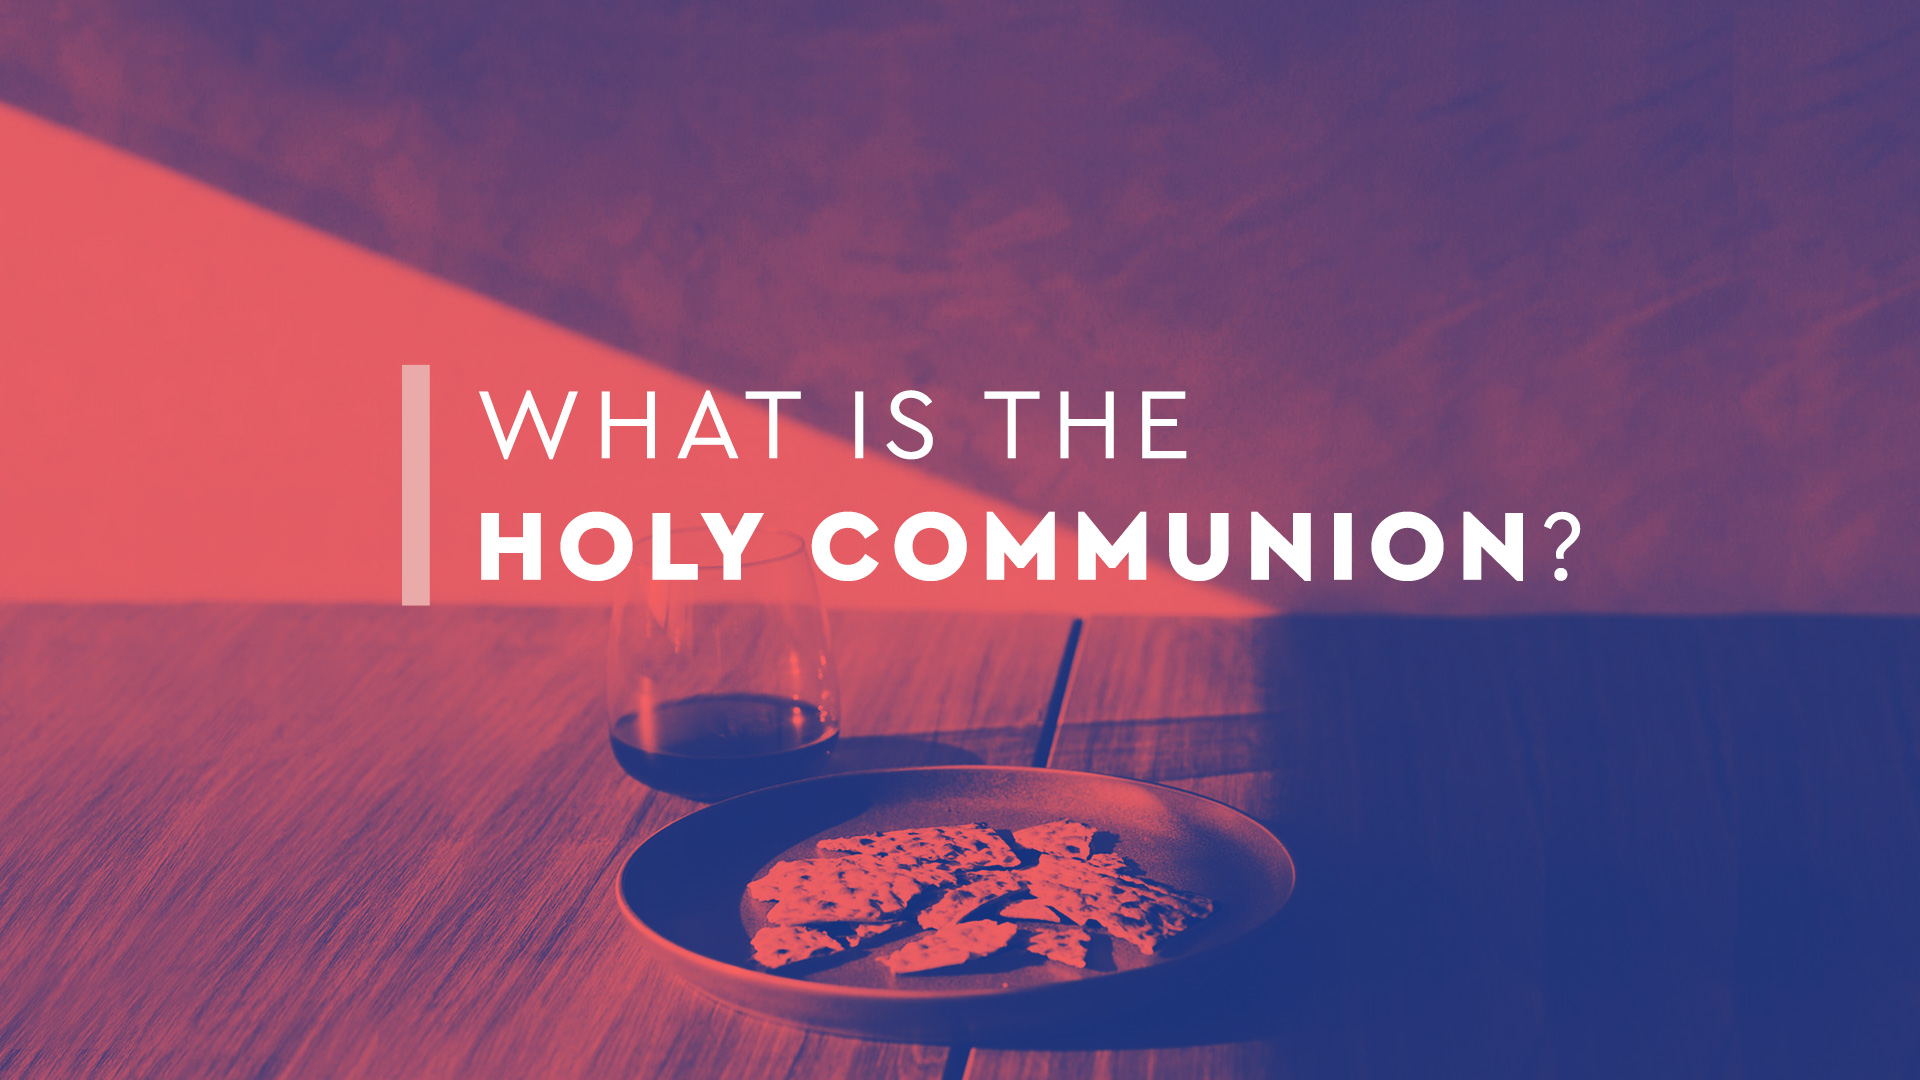 What is the Holy Communion?